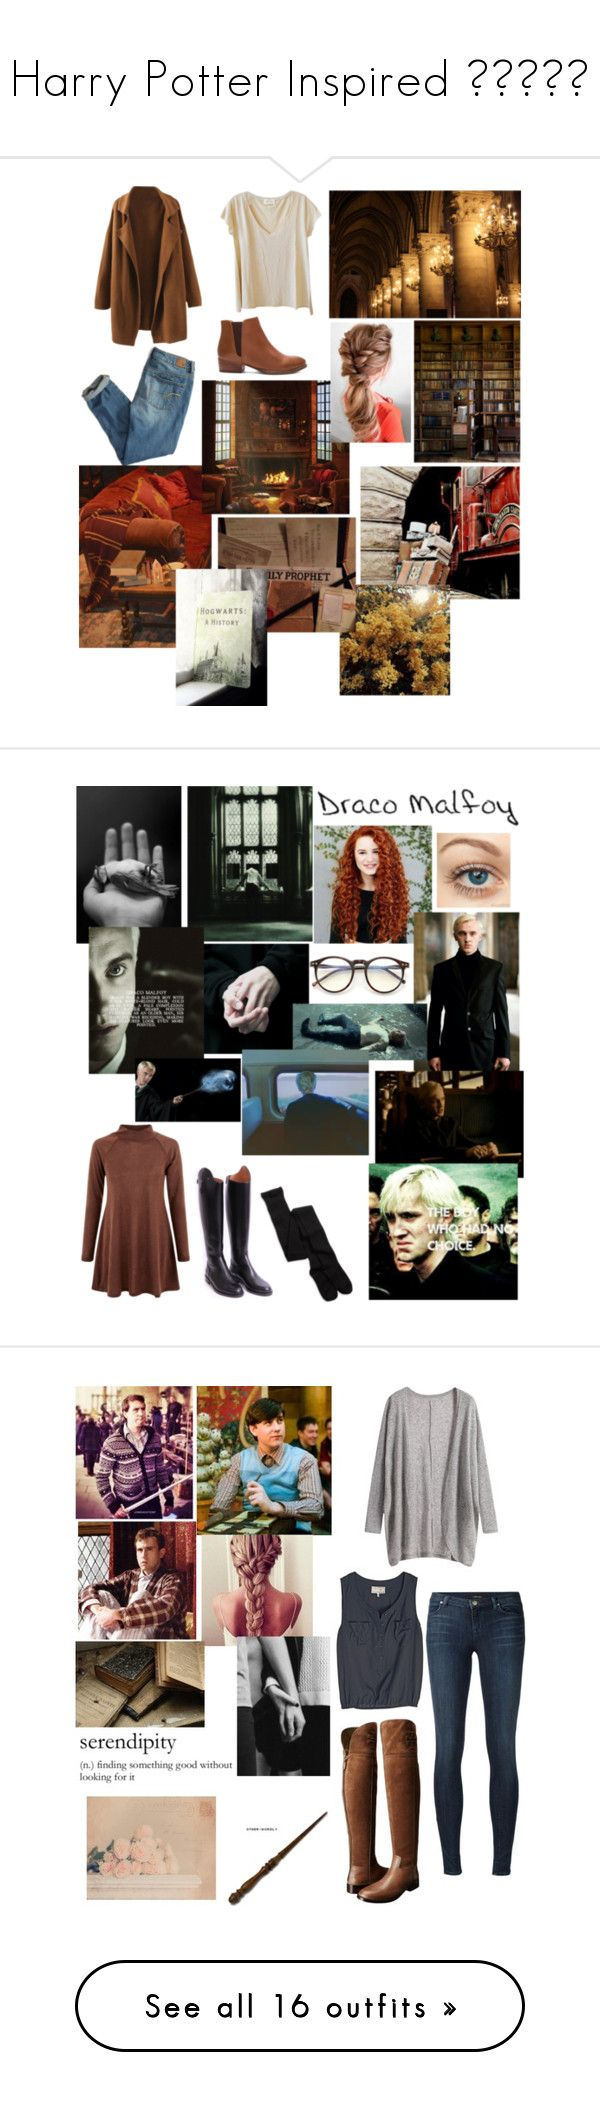 """""""Harry Potter Inspired 😉✍🏻📚📕"""" by alisa-avery ❤ liked on Polyvore featuring American Vintage, American Eagle Outfitters, Seychelles, GET LOST, Converse, New Look, Wildfox, Gucci, Neville and J Brand"""